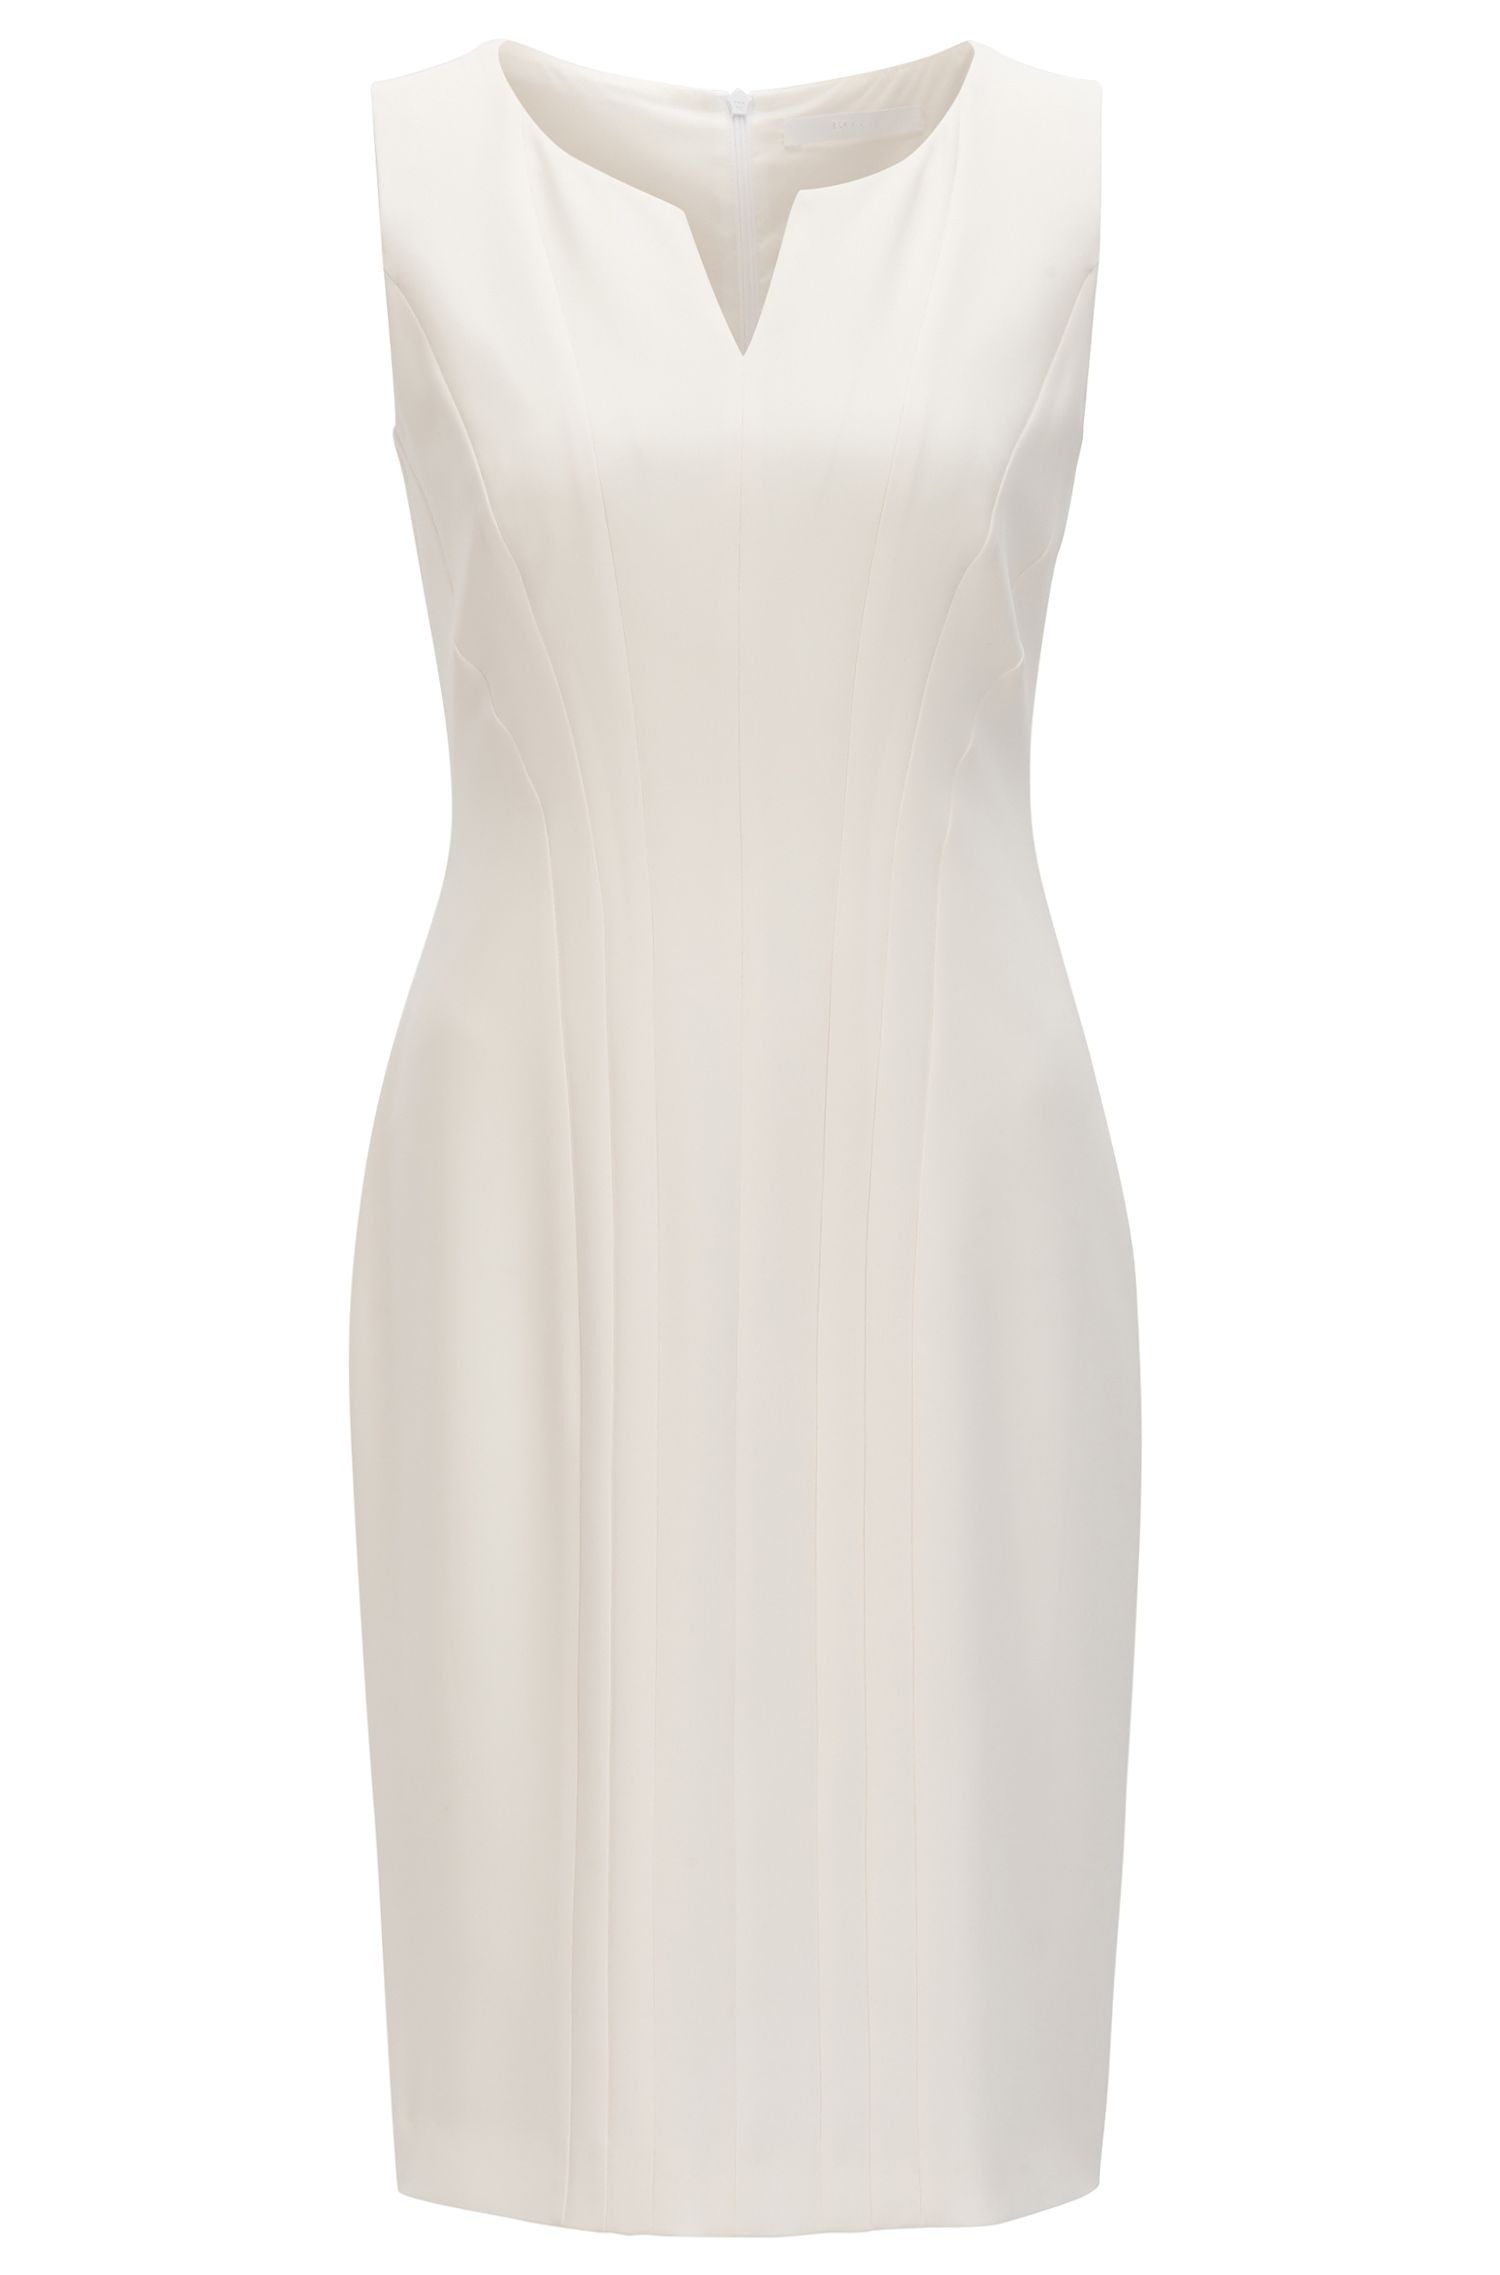 Tailored shift dress with notch neckline